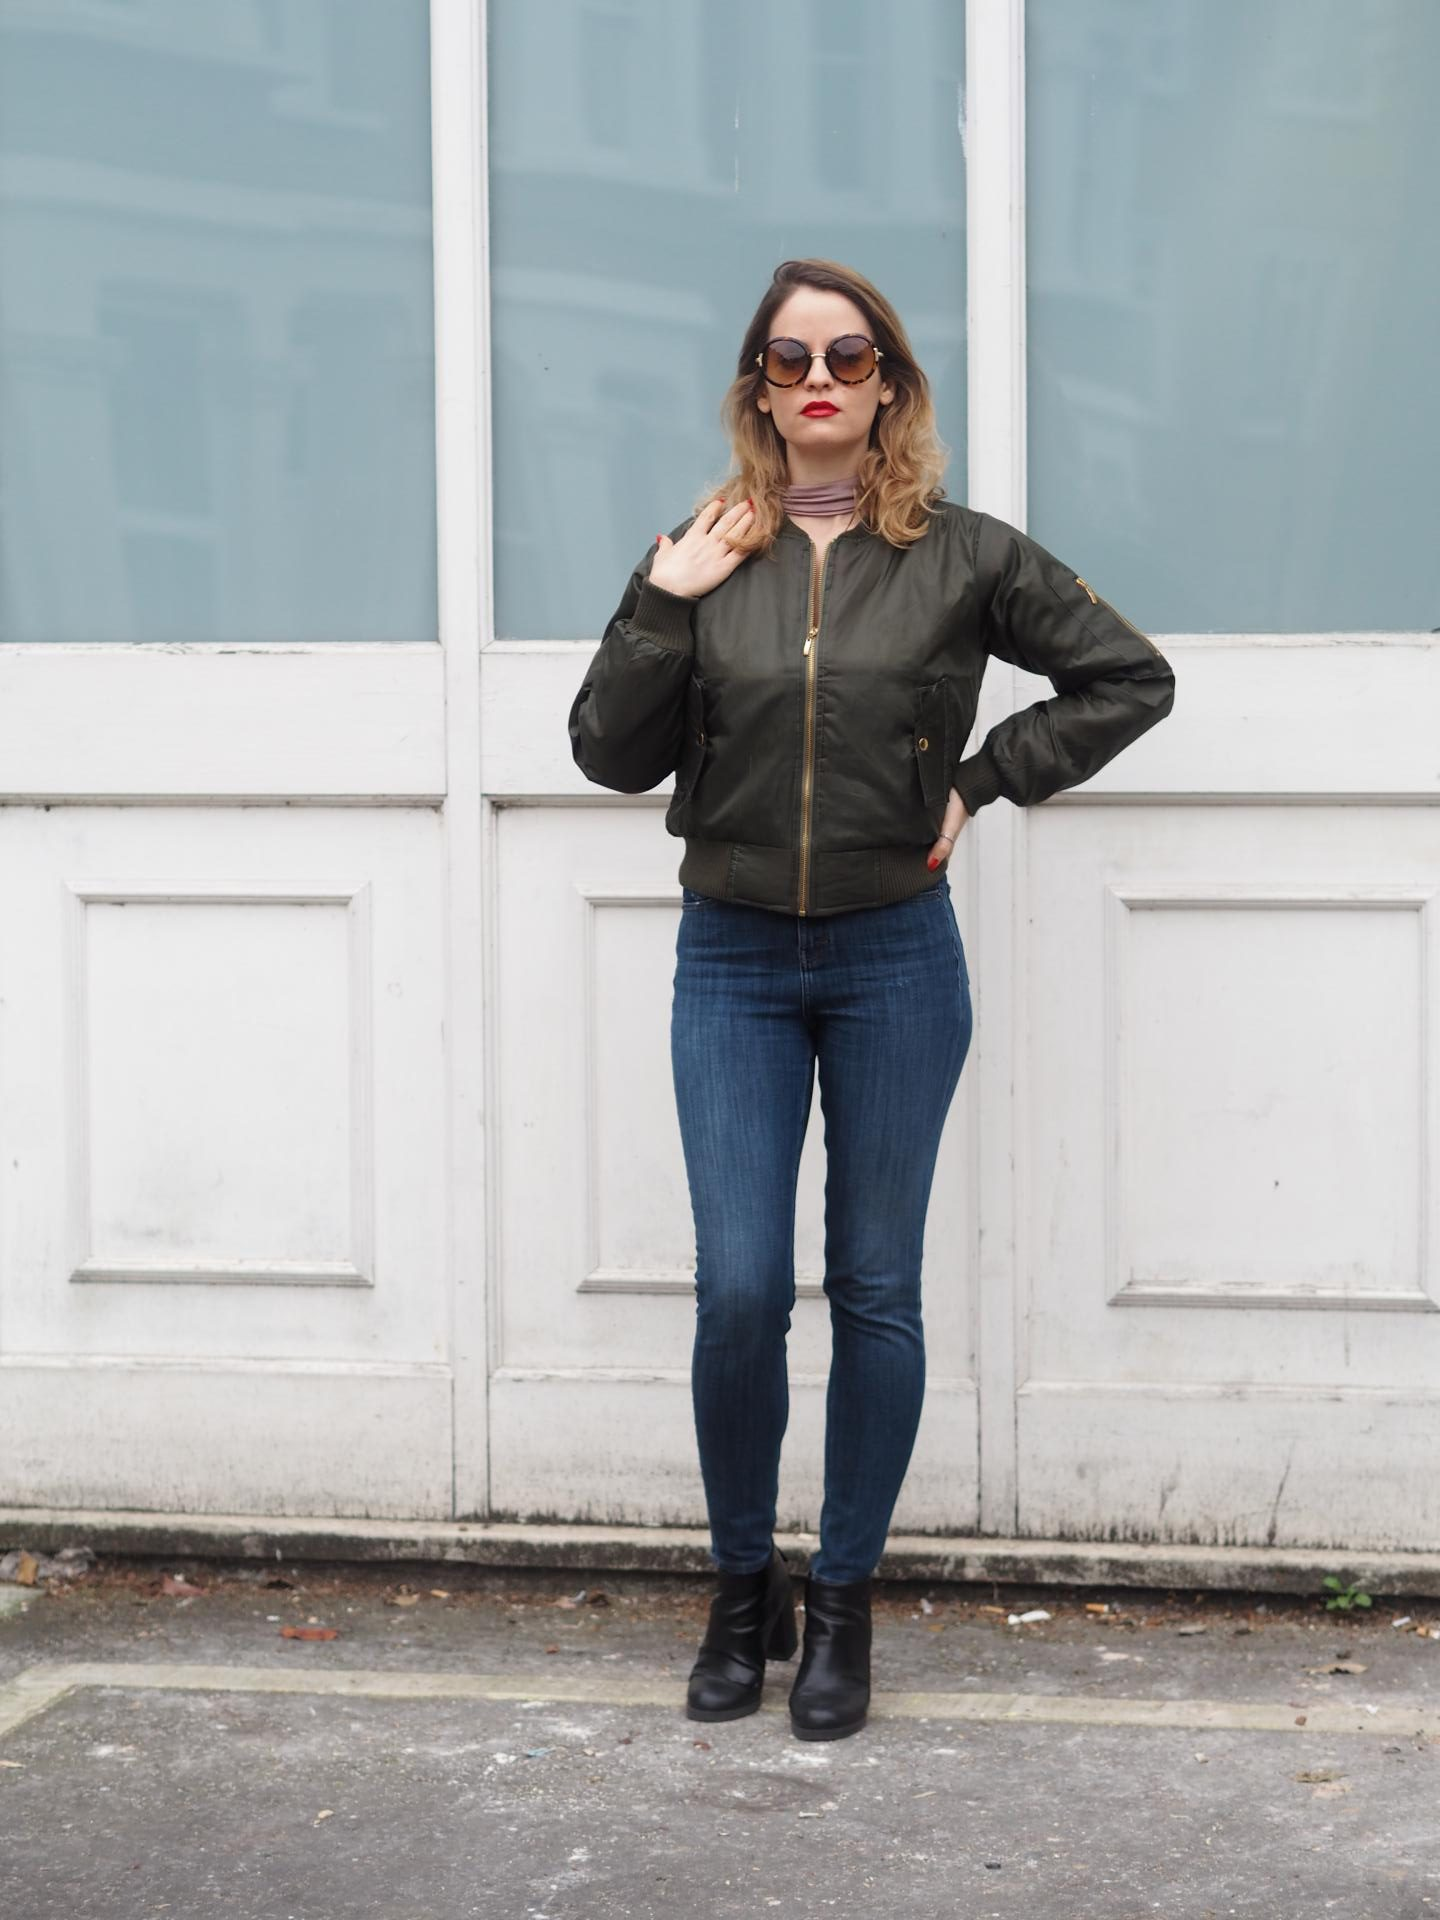 Trendeo Olive Bomber Jacket with Topshop Jeans and Pull and Bear Ankle Boots